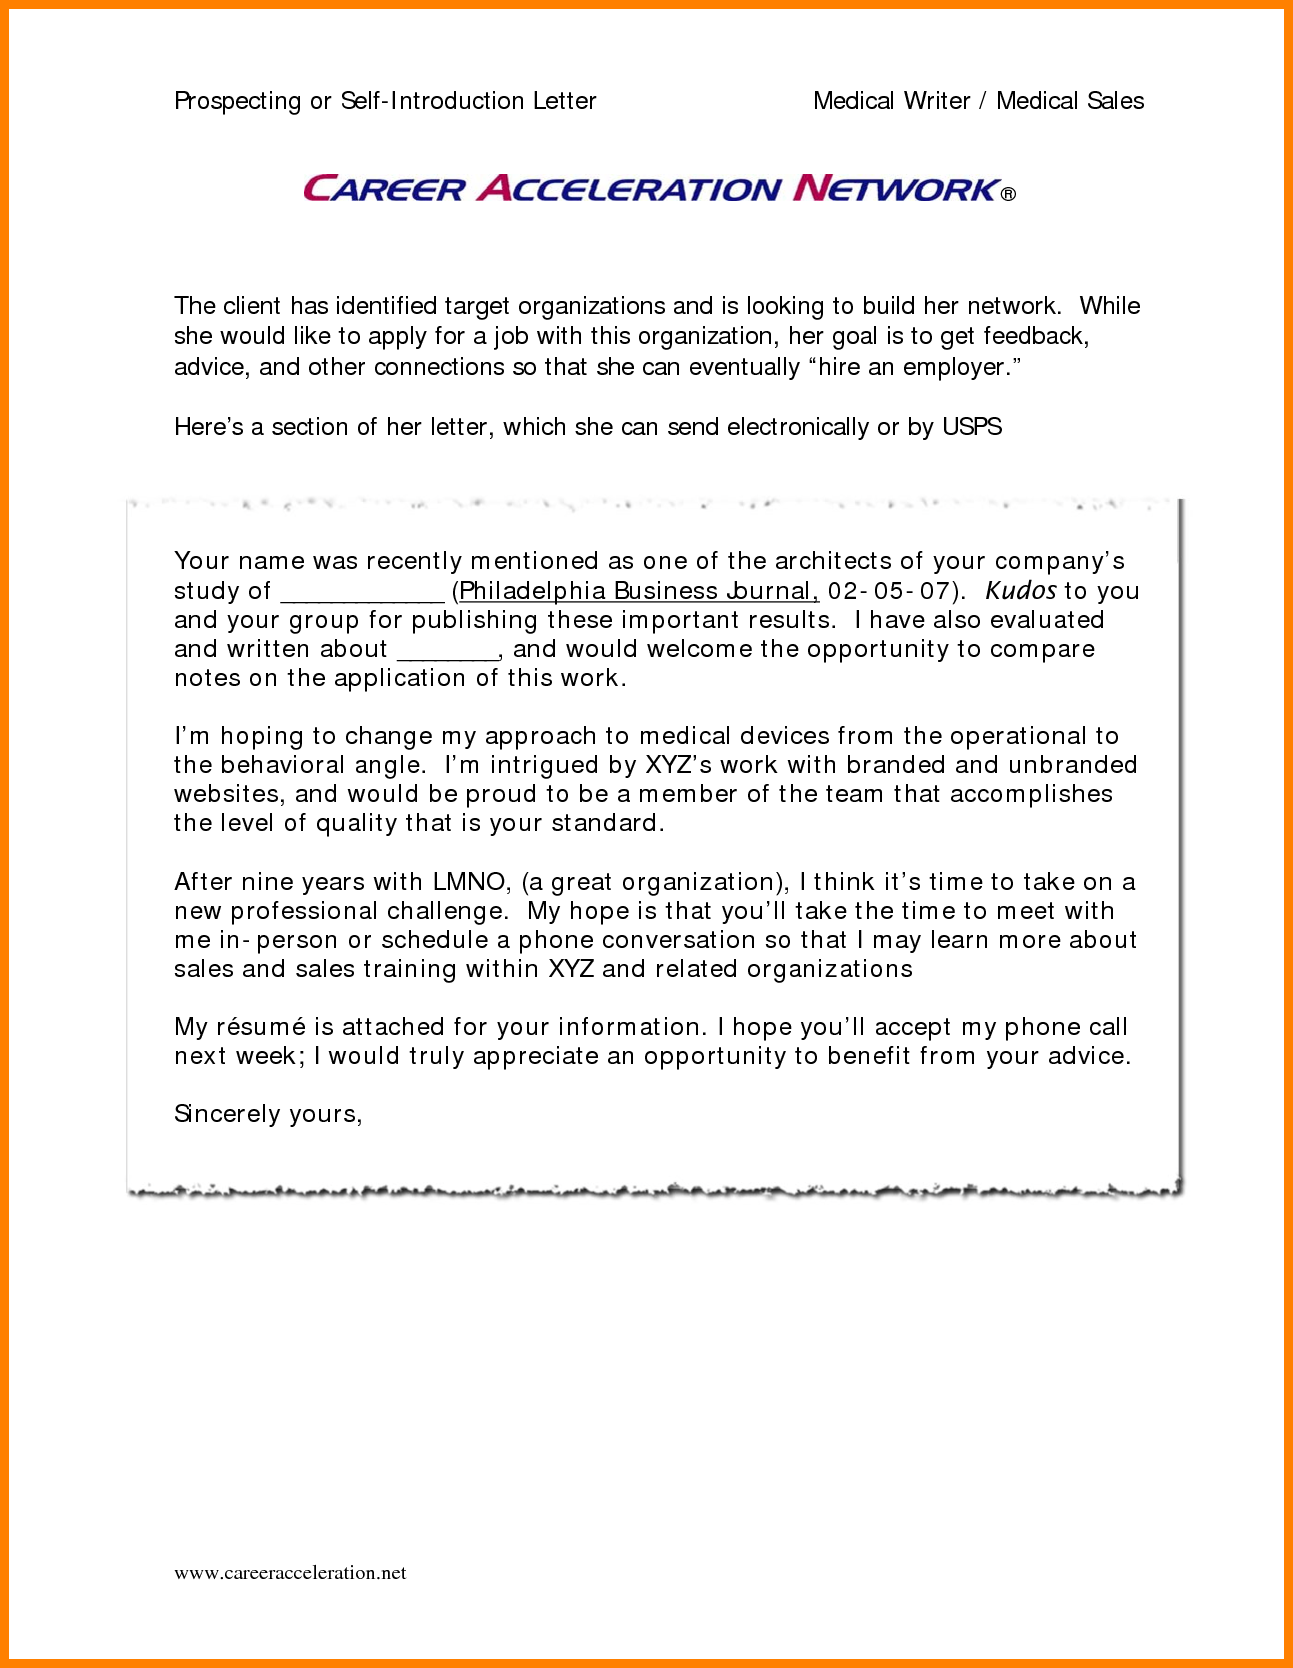 Training Acknowledgement Letter Templates 5+ Free Word, PDF